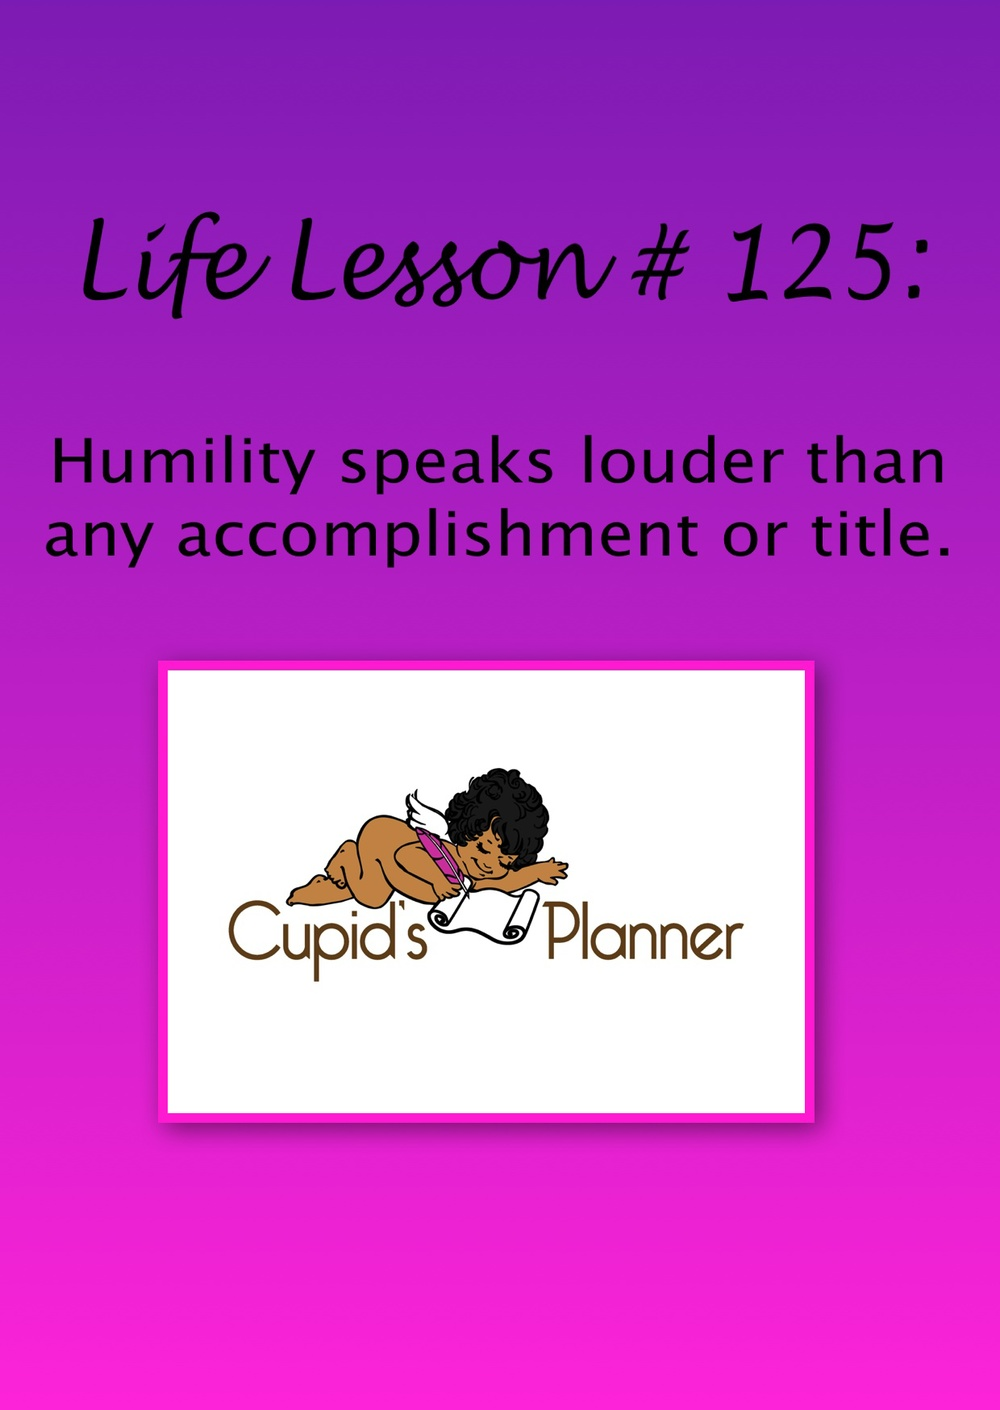 Life Lesson on Humility